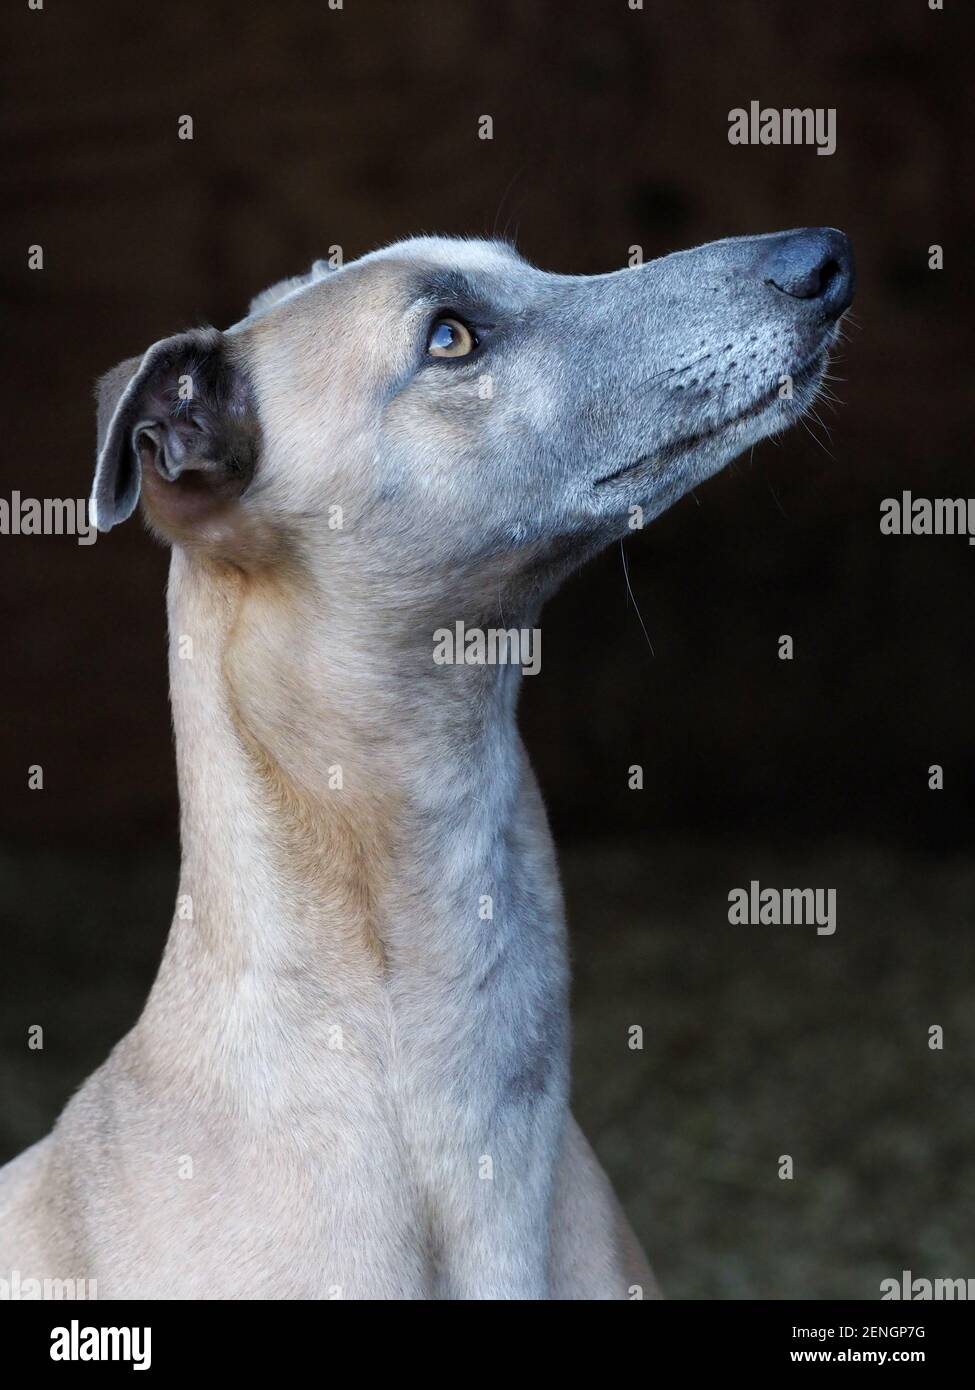 A head shot of a pretty Whippet against a black background. Stock Photo